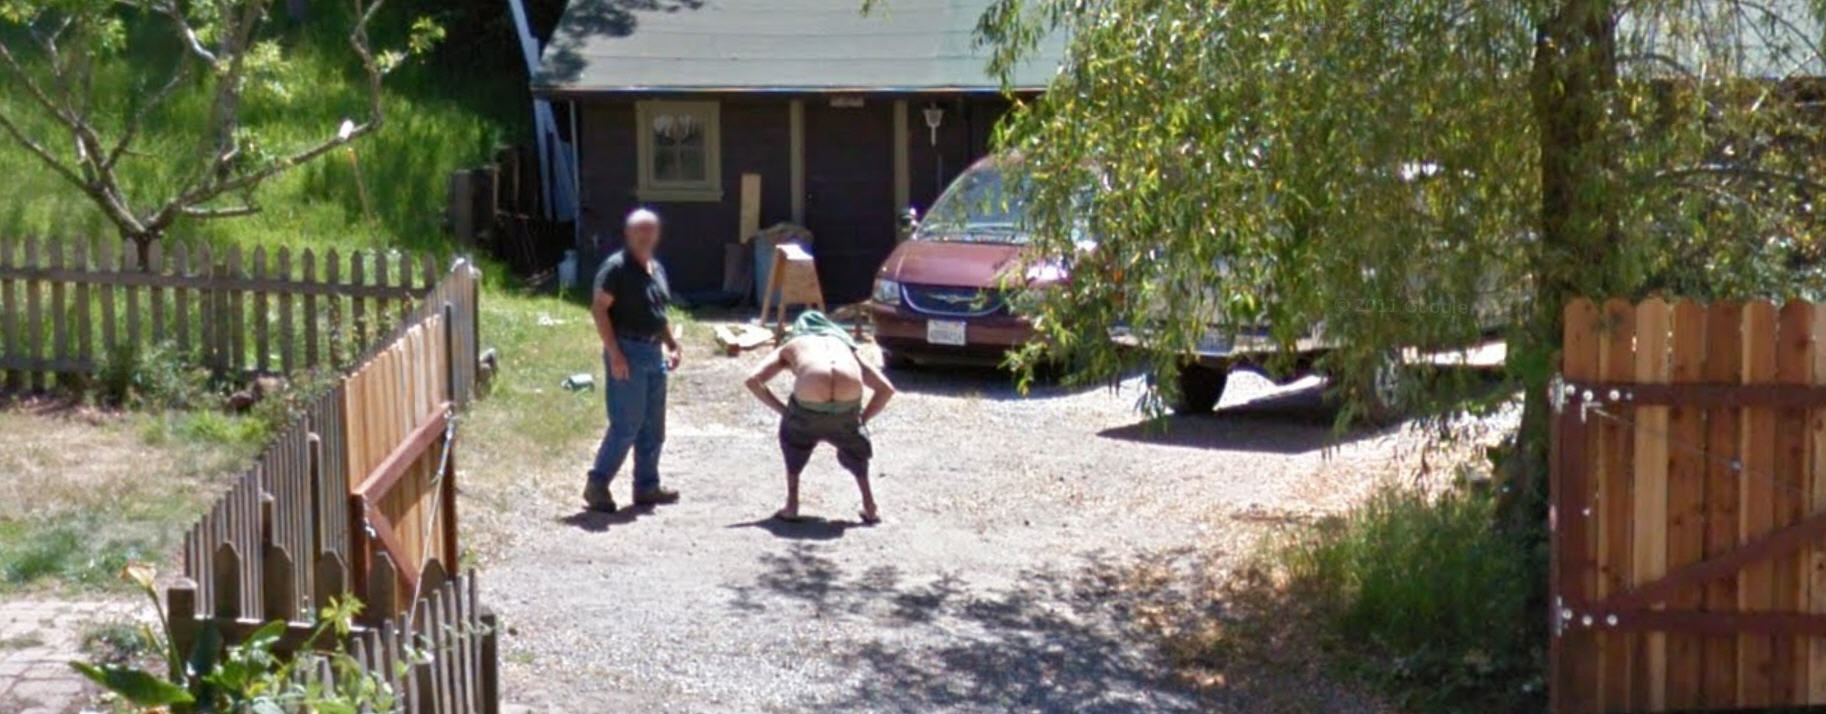 Yet another Full Moon on Google Street View